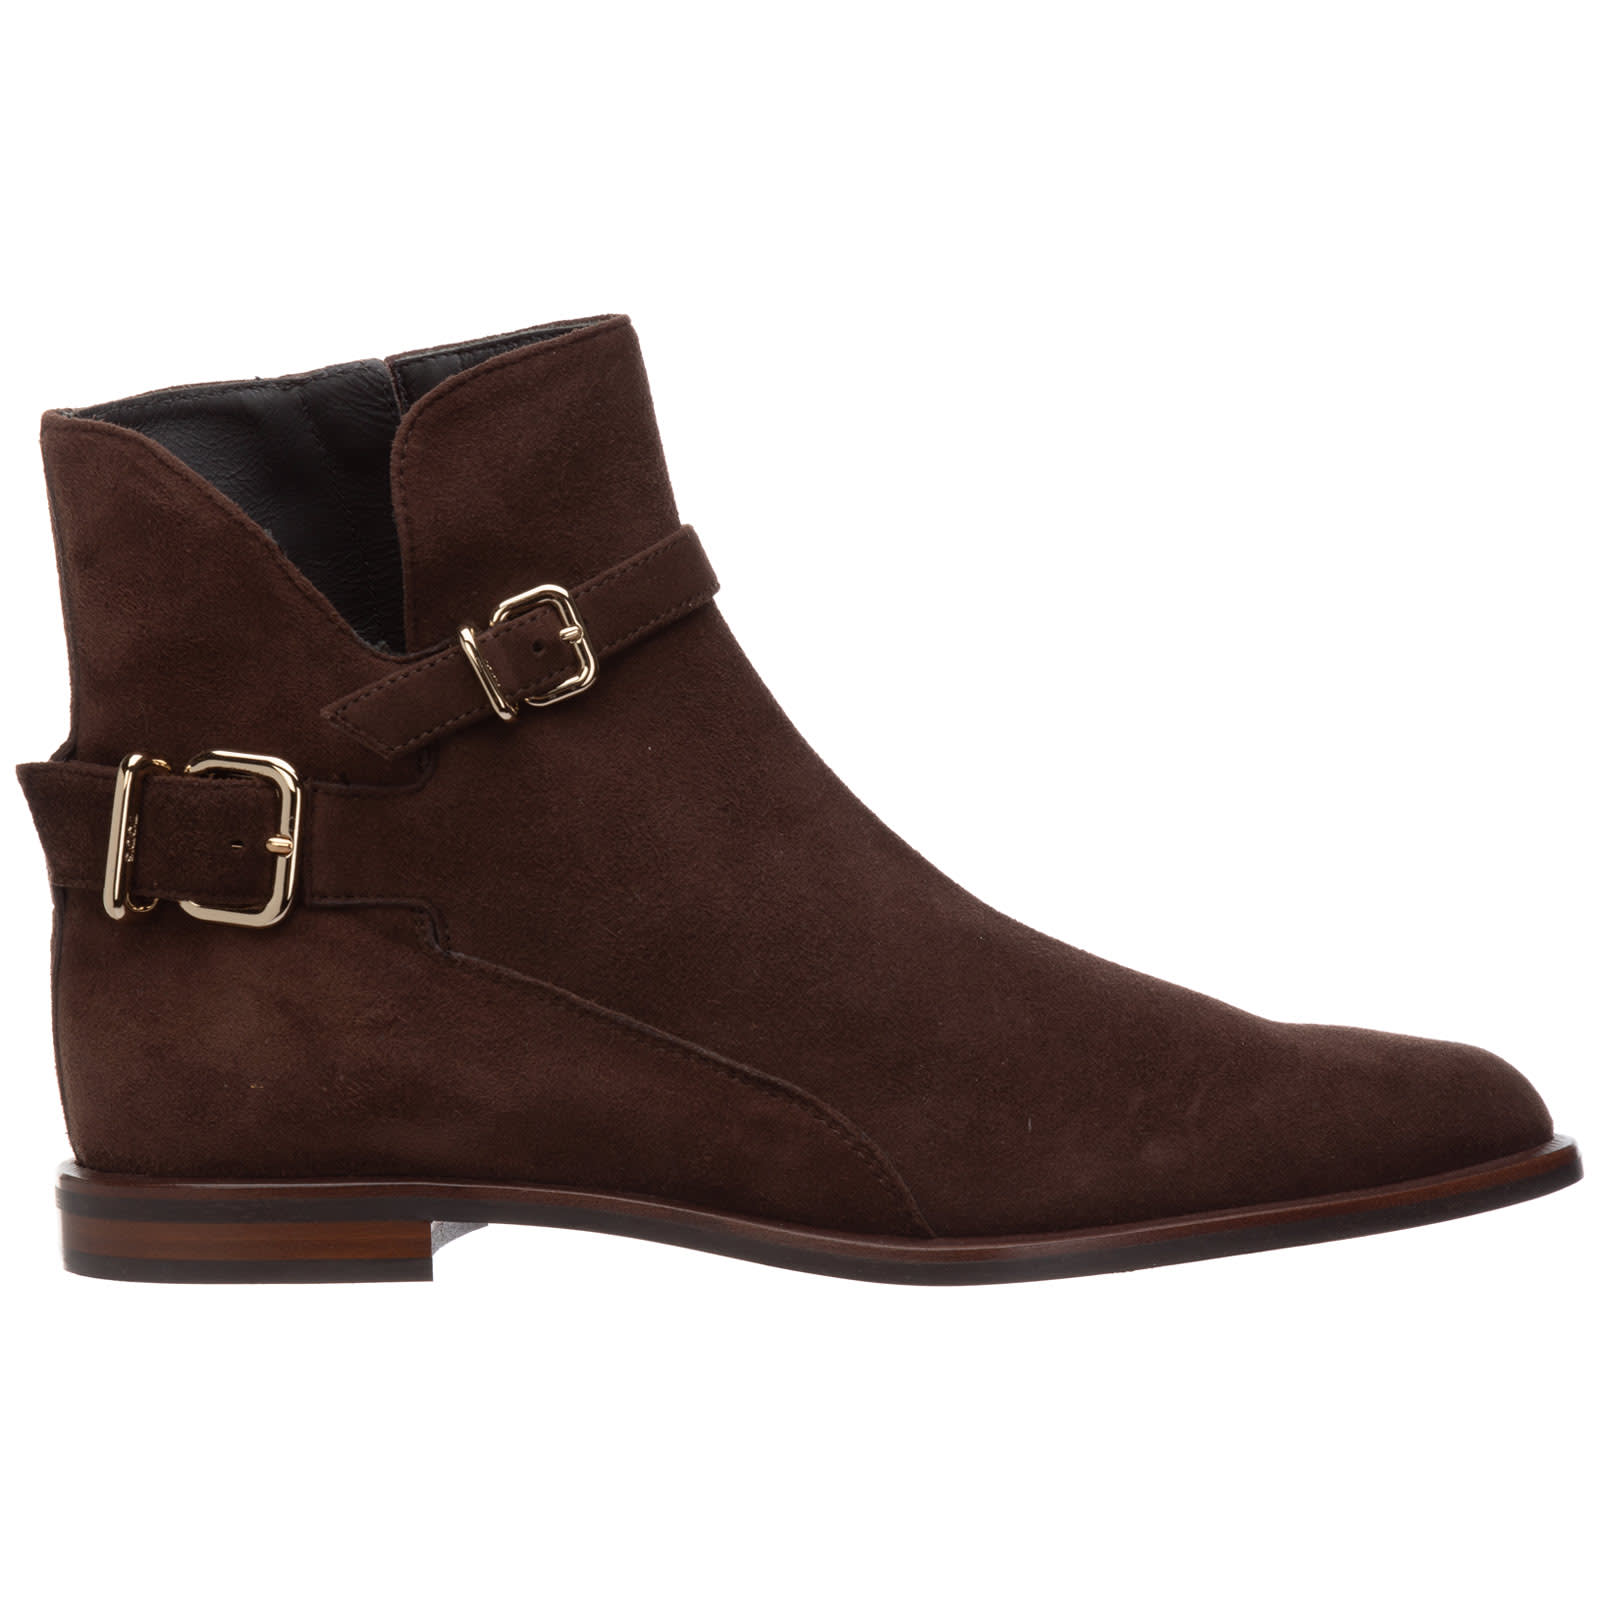 Buy Tods Interactive Ankle Boots online, shop Tods shoes with free shipping